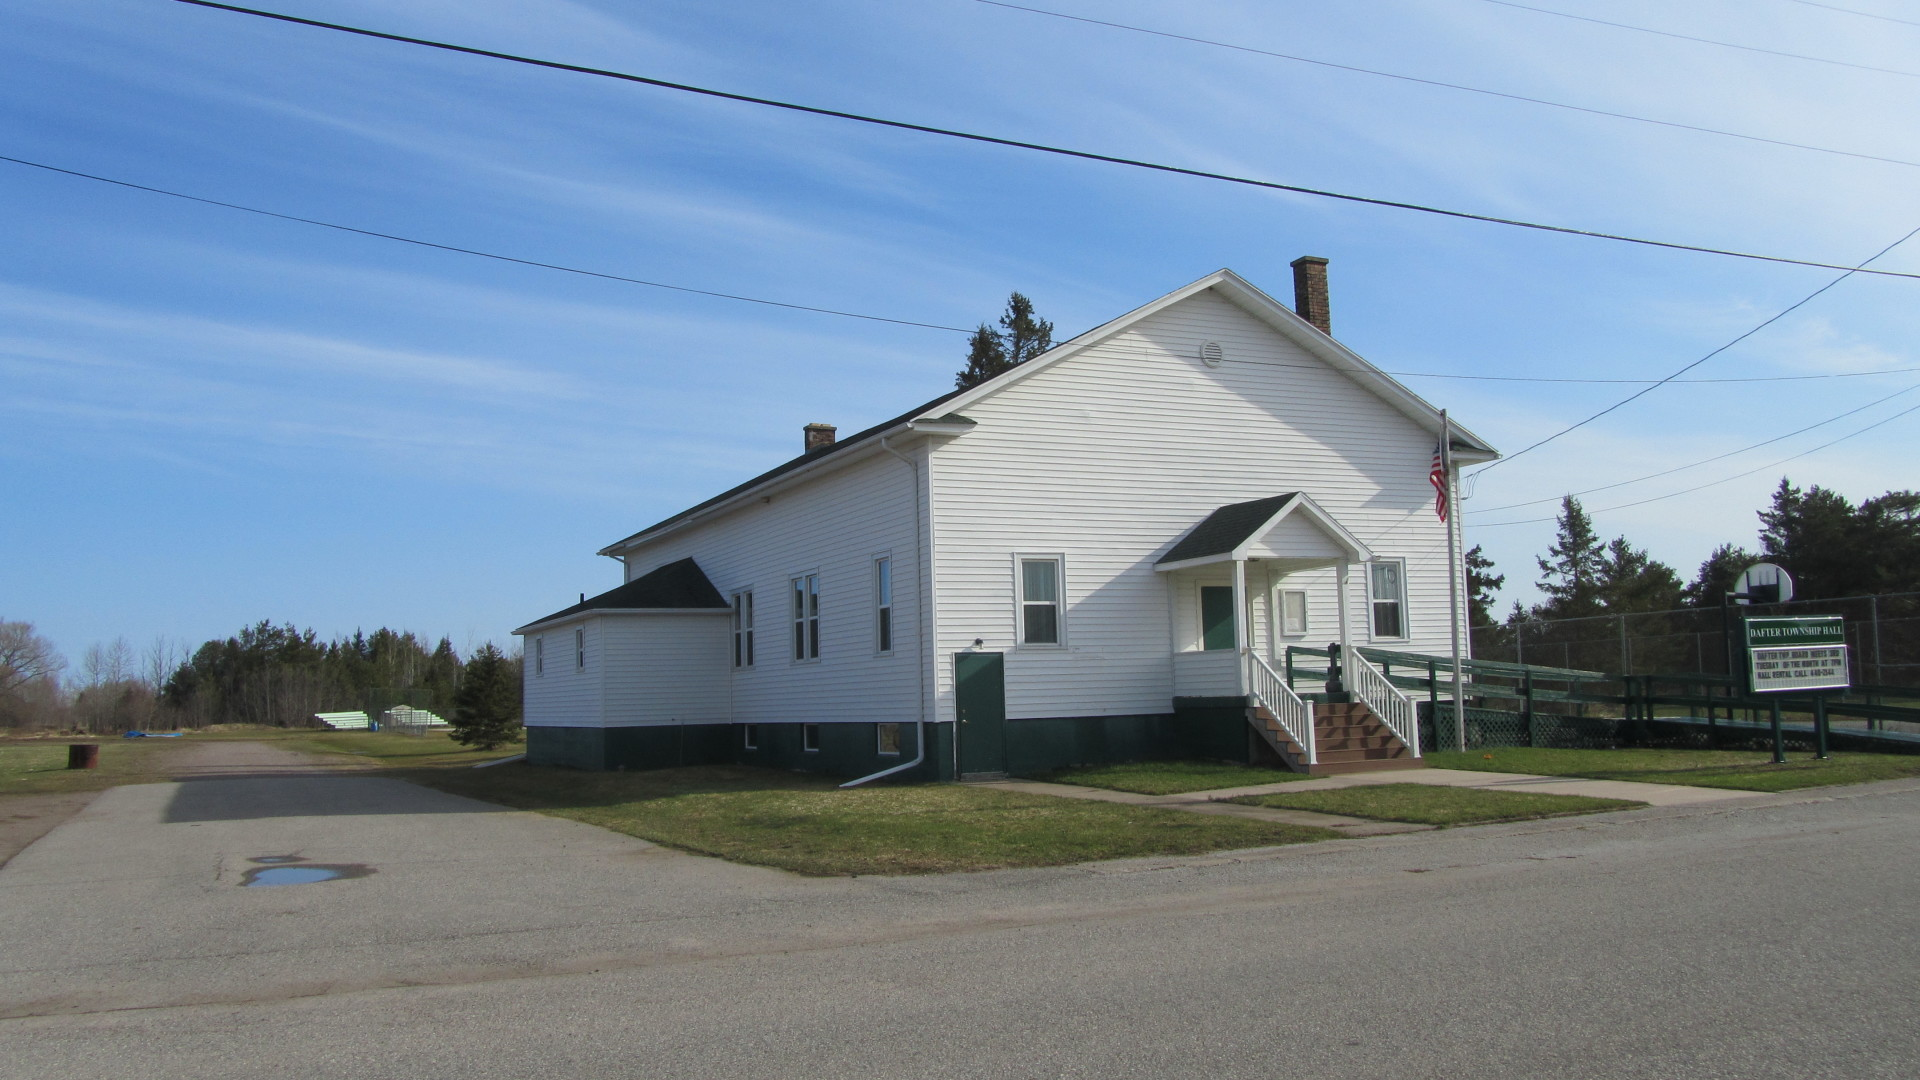 Dafter Township Hall